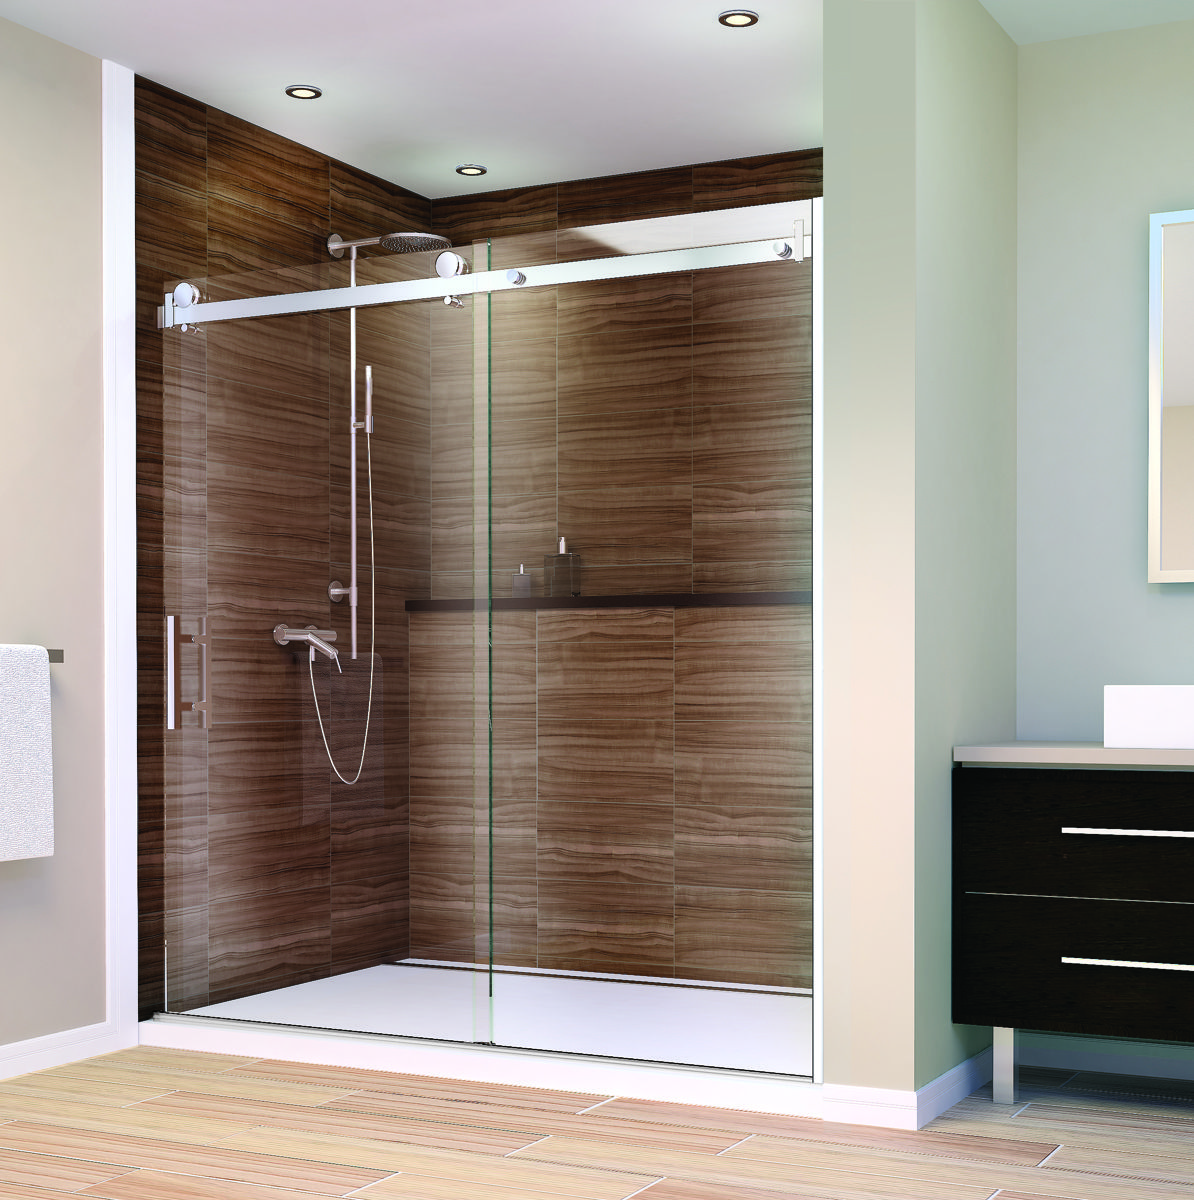 Frameless Vs Semi Frameless Vs Framed Shower Enclosures With